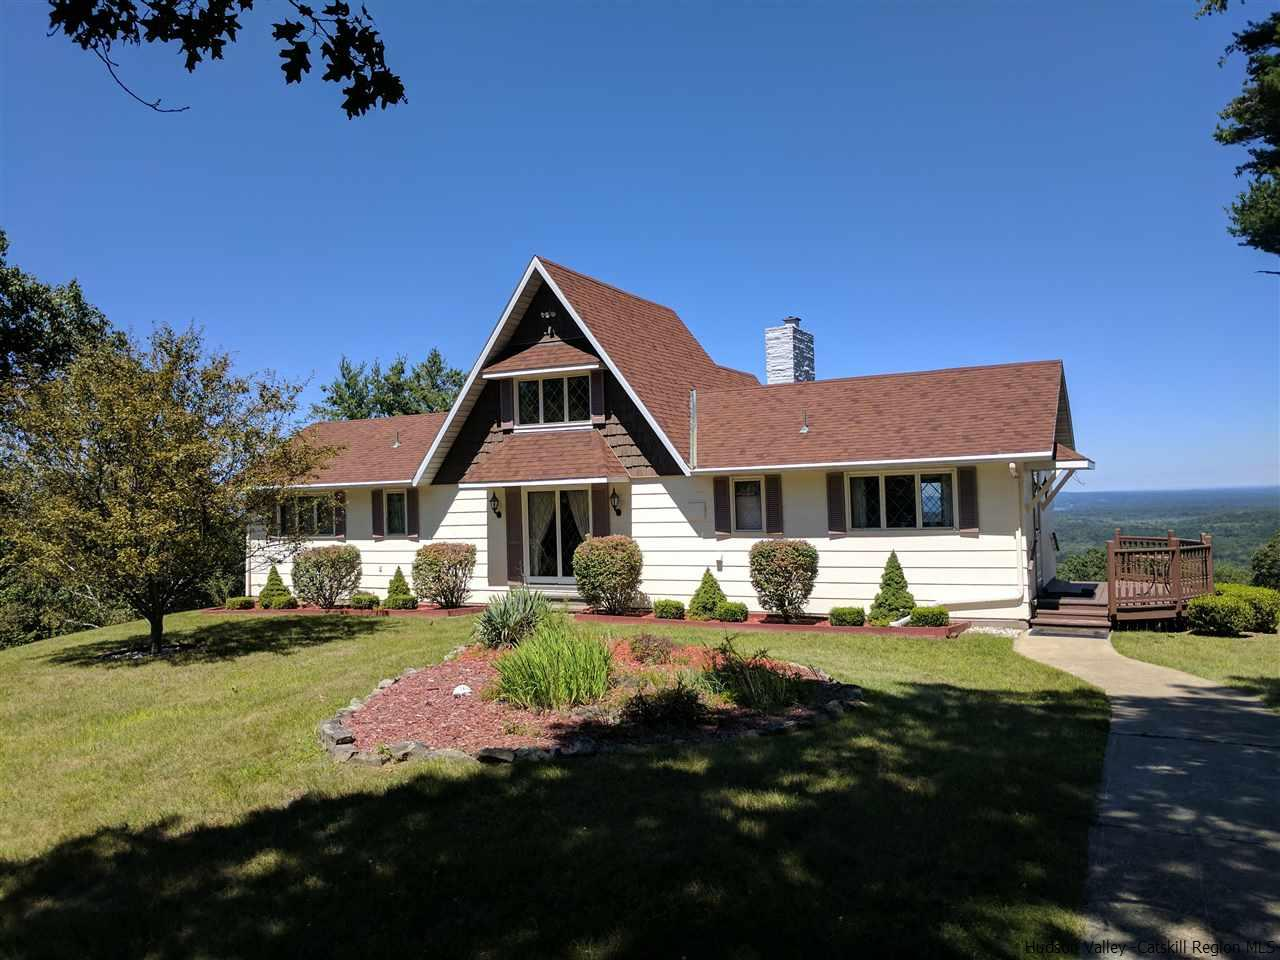 Single Family Home for Sale at 552 Popeltown Road 552 Popeltown Road Ulster Park, New York 12429 United States